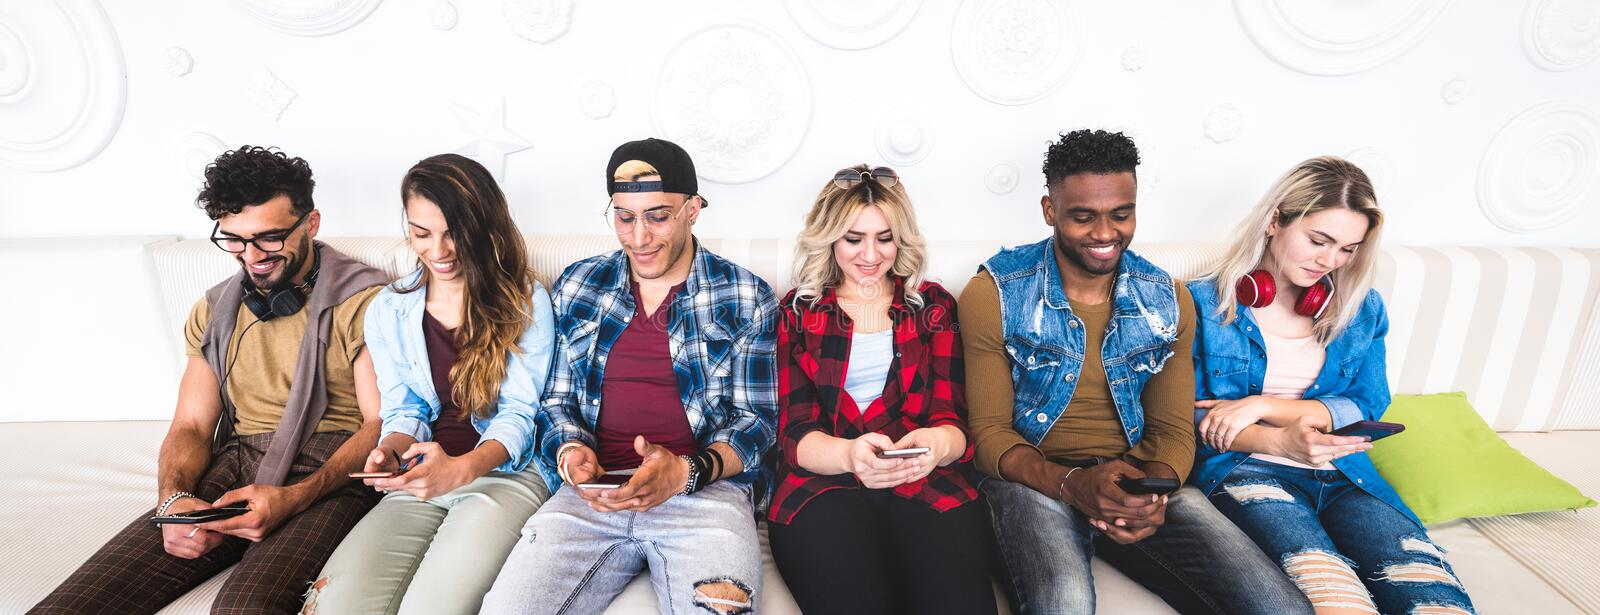 Friends using smartphone on sofa at indoor venue - People group addicted by mobile smart phone - Technology concept stock image